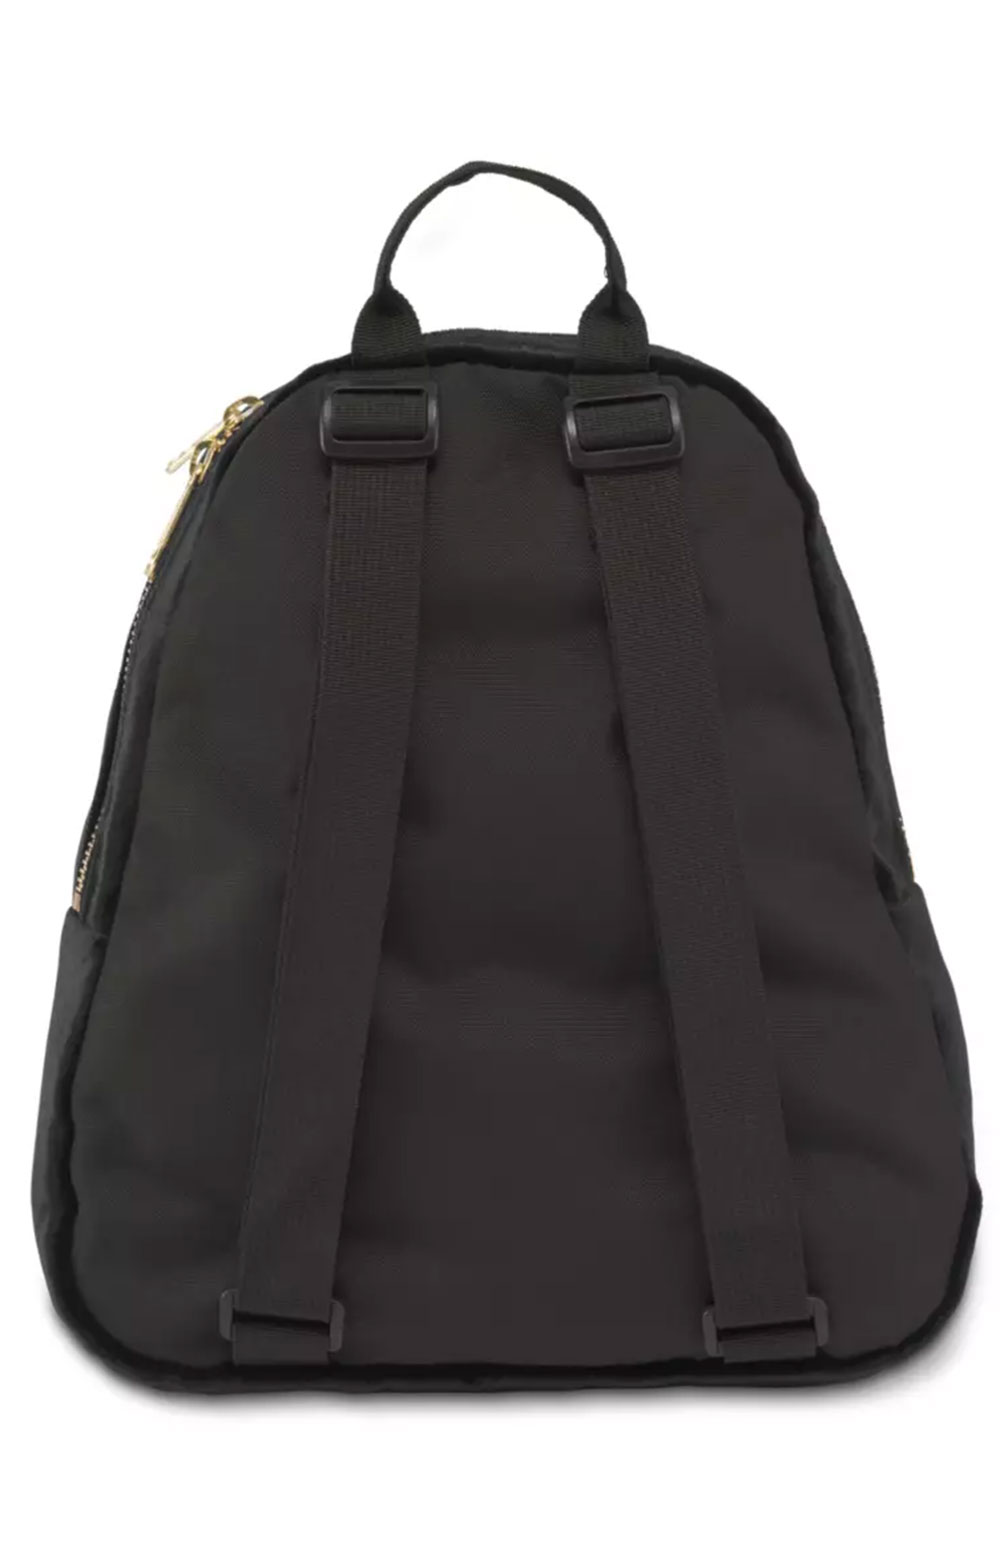 Half Pint FX Mini Backpack - Black Velvet 3